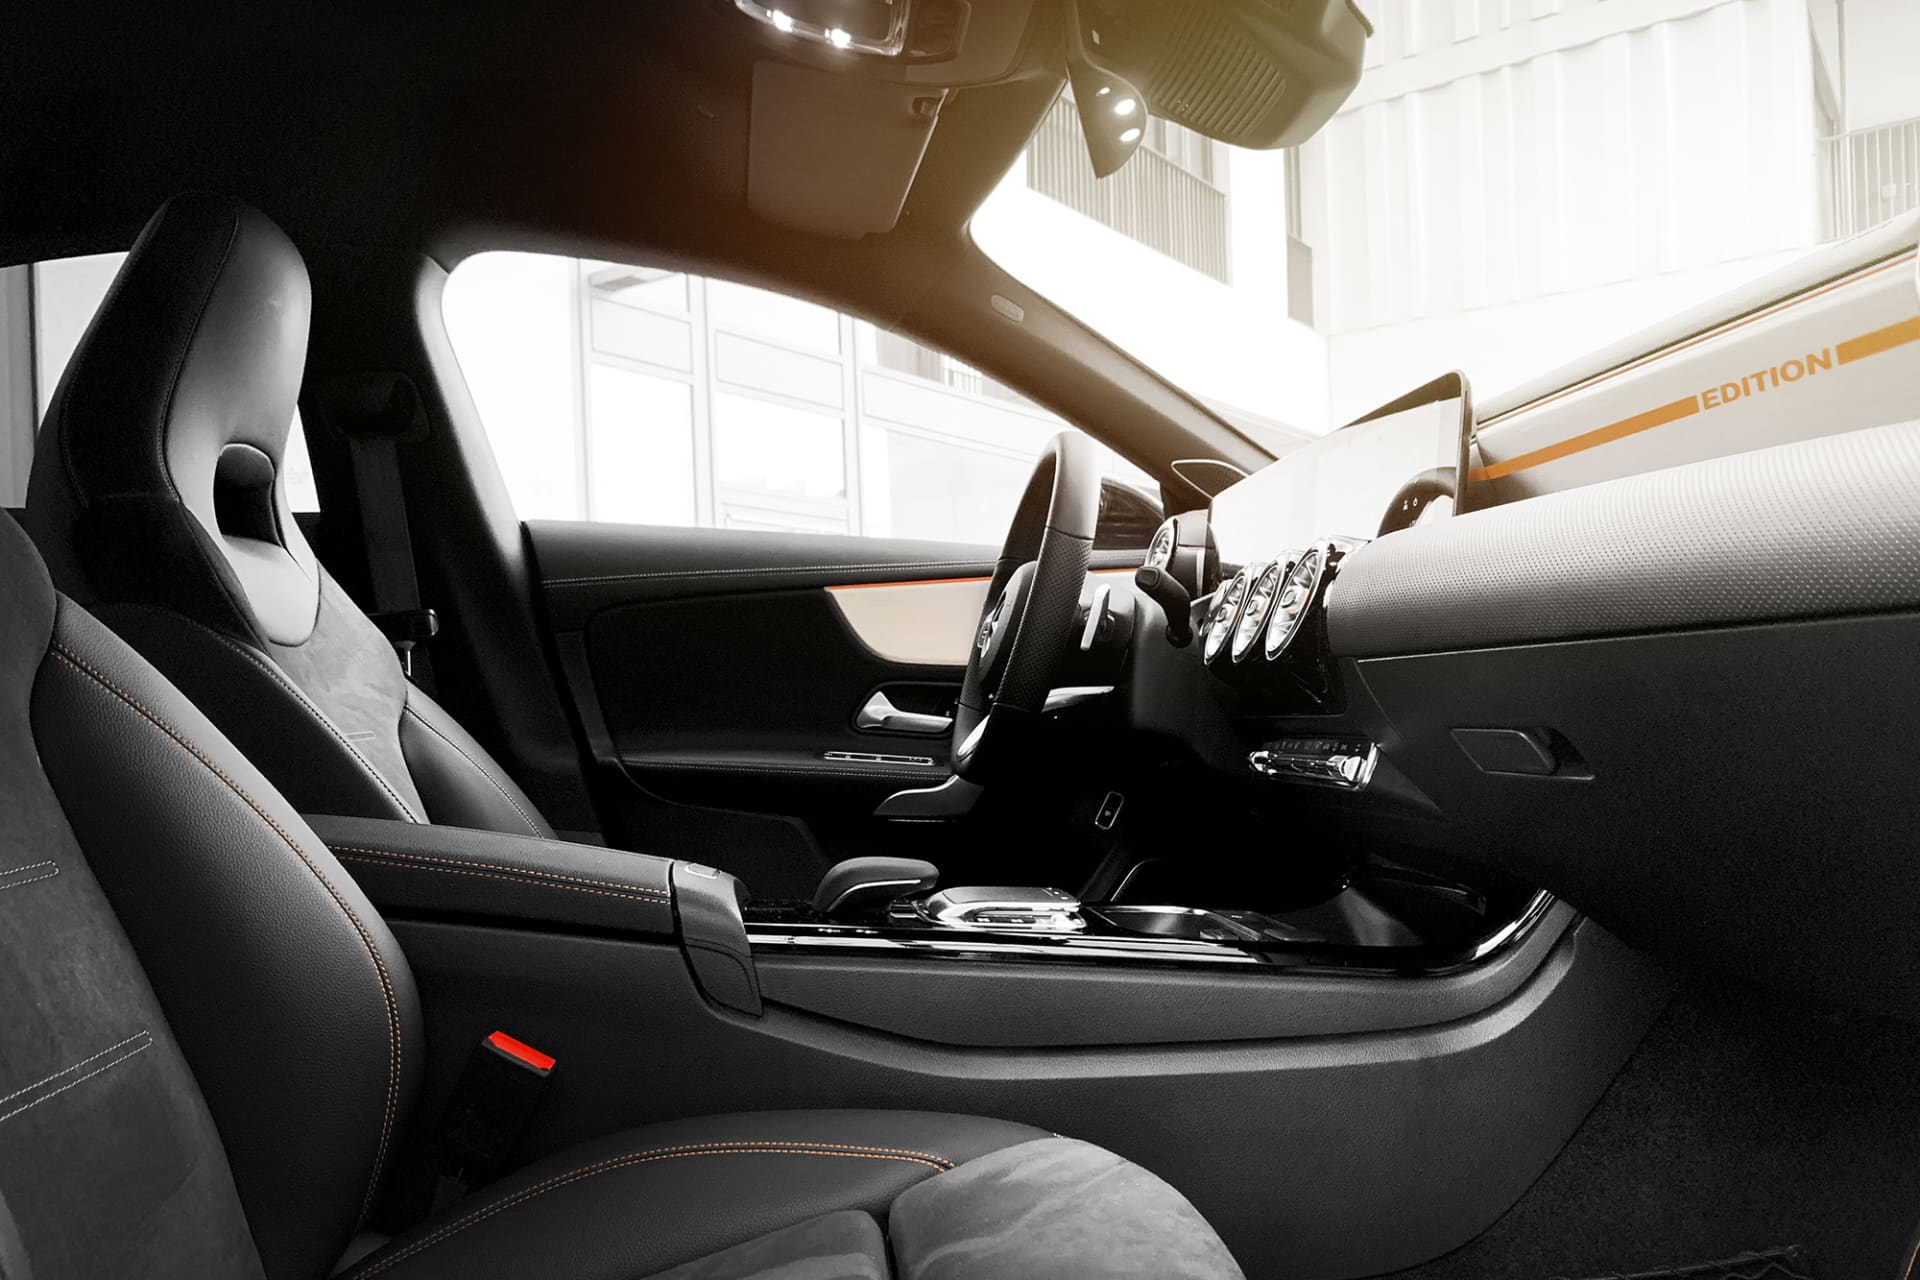 The interior of the CLA is tight and well-fitting without feeling small and claustrophobic.